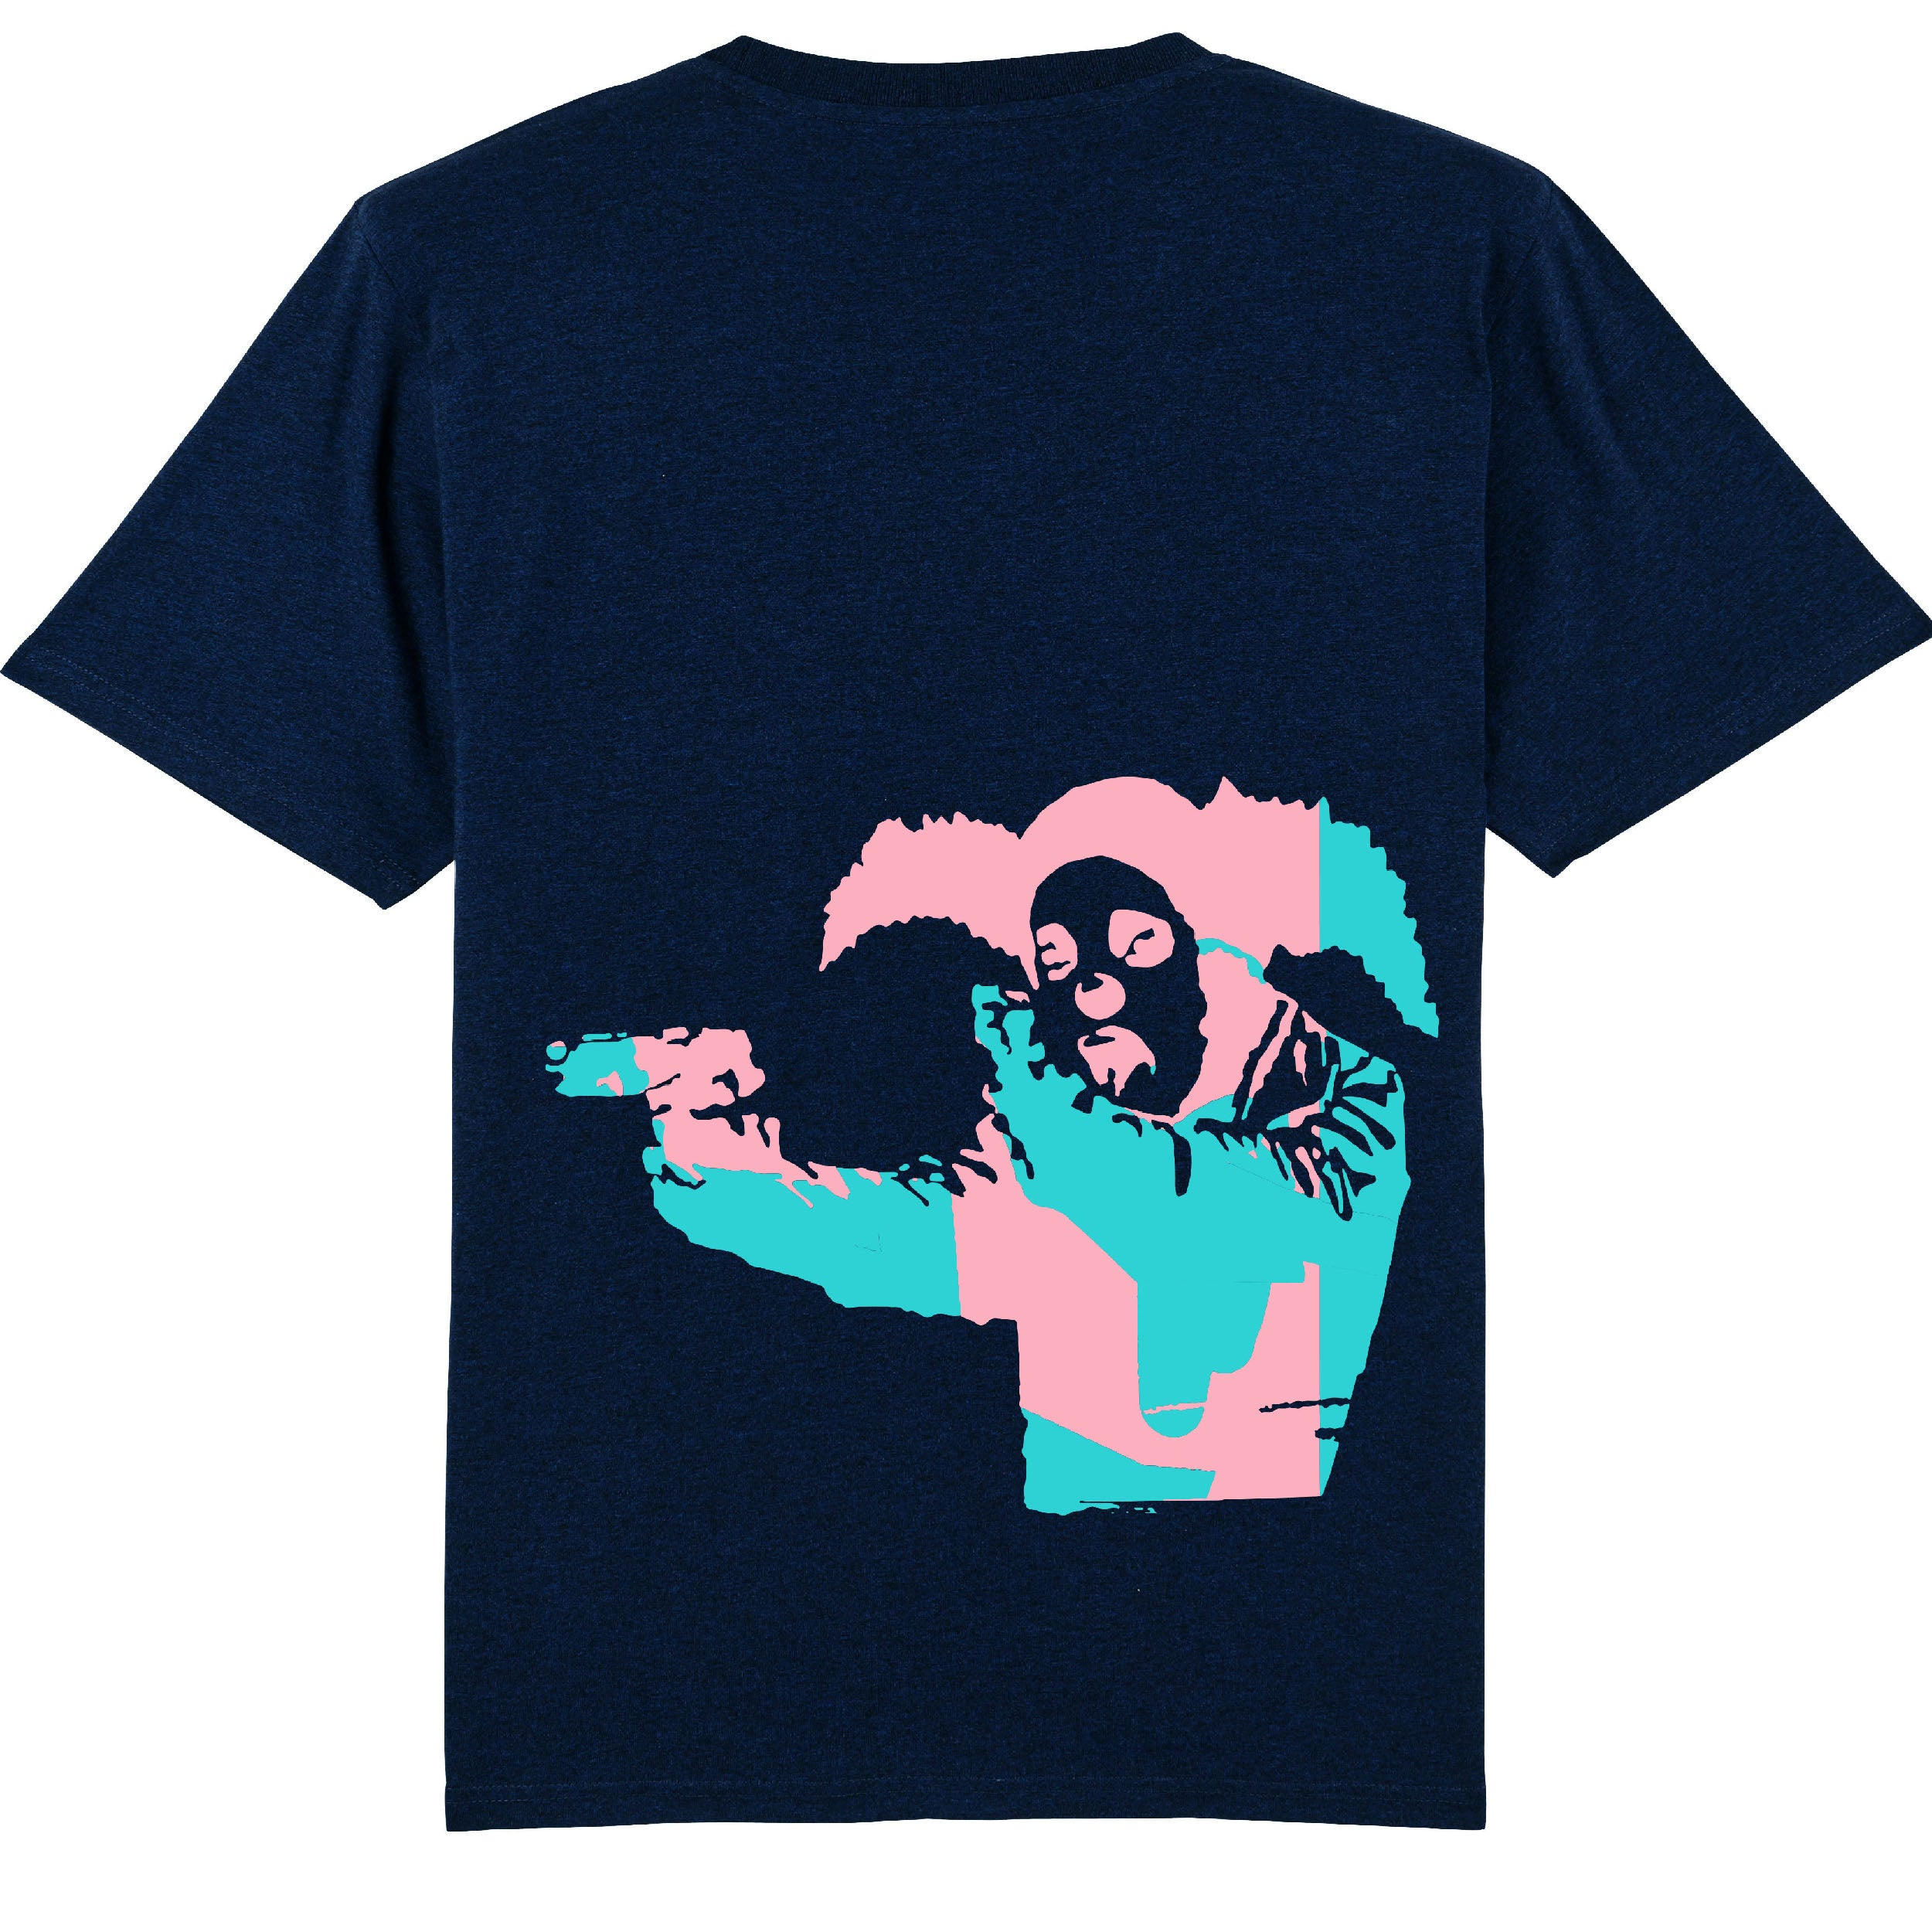 Clown Skateboards - Daily Operation Tee - Navy / Pink